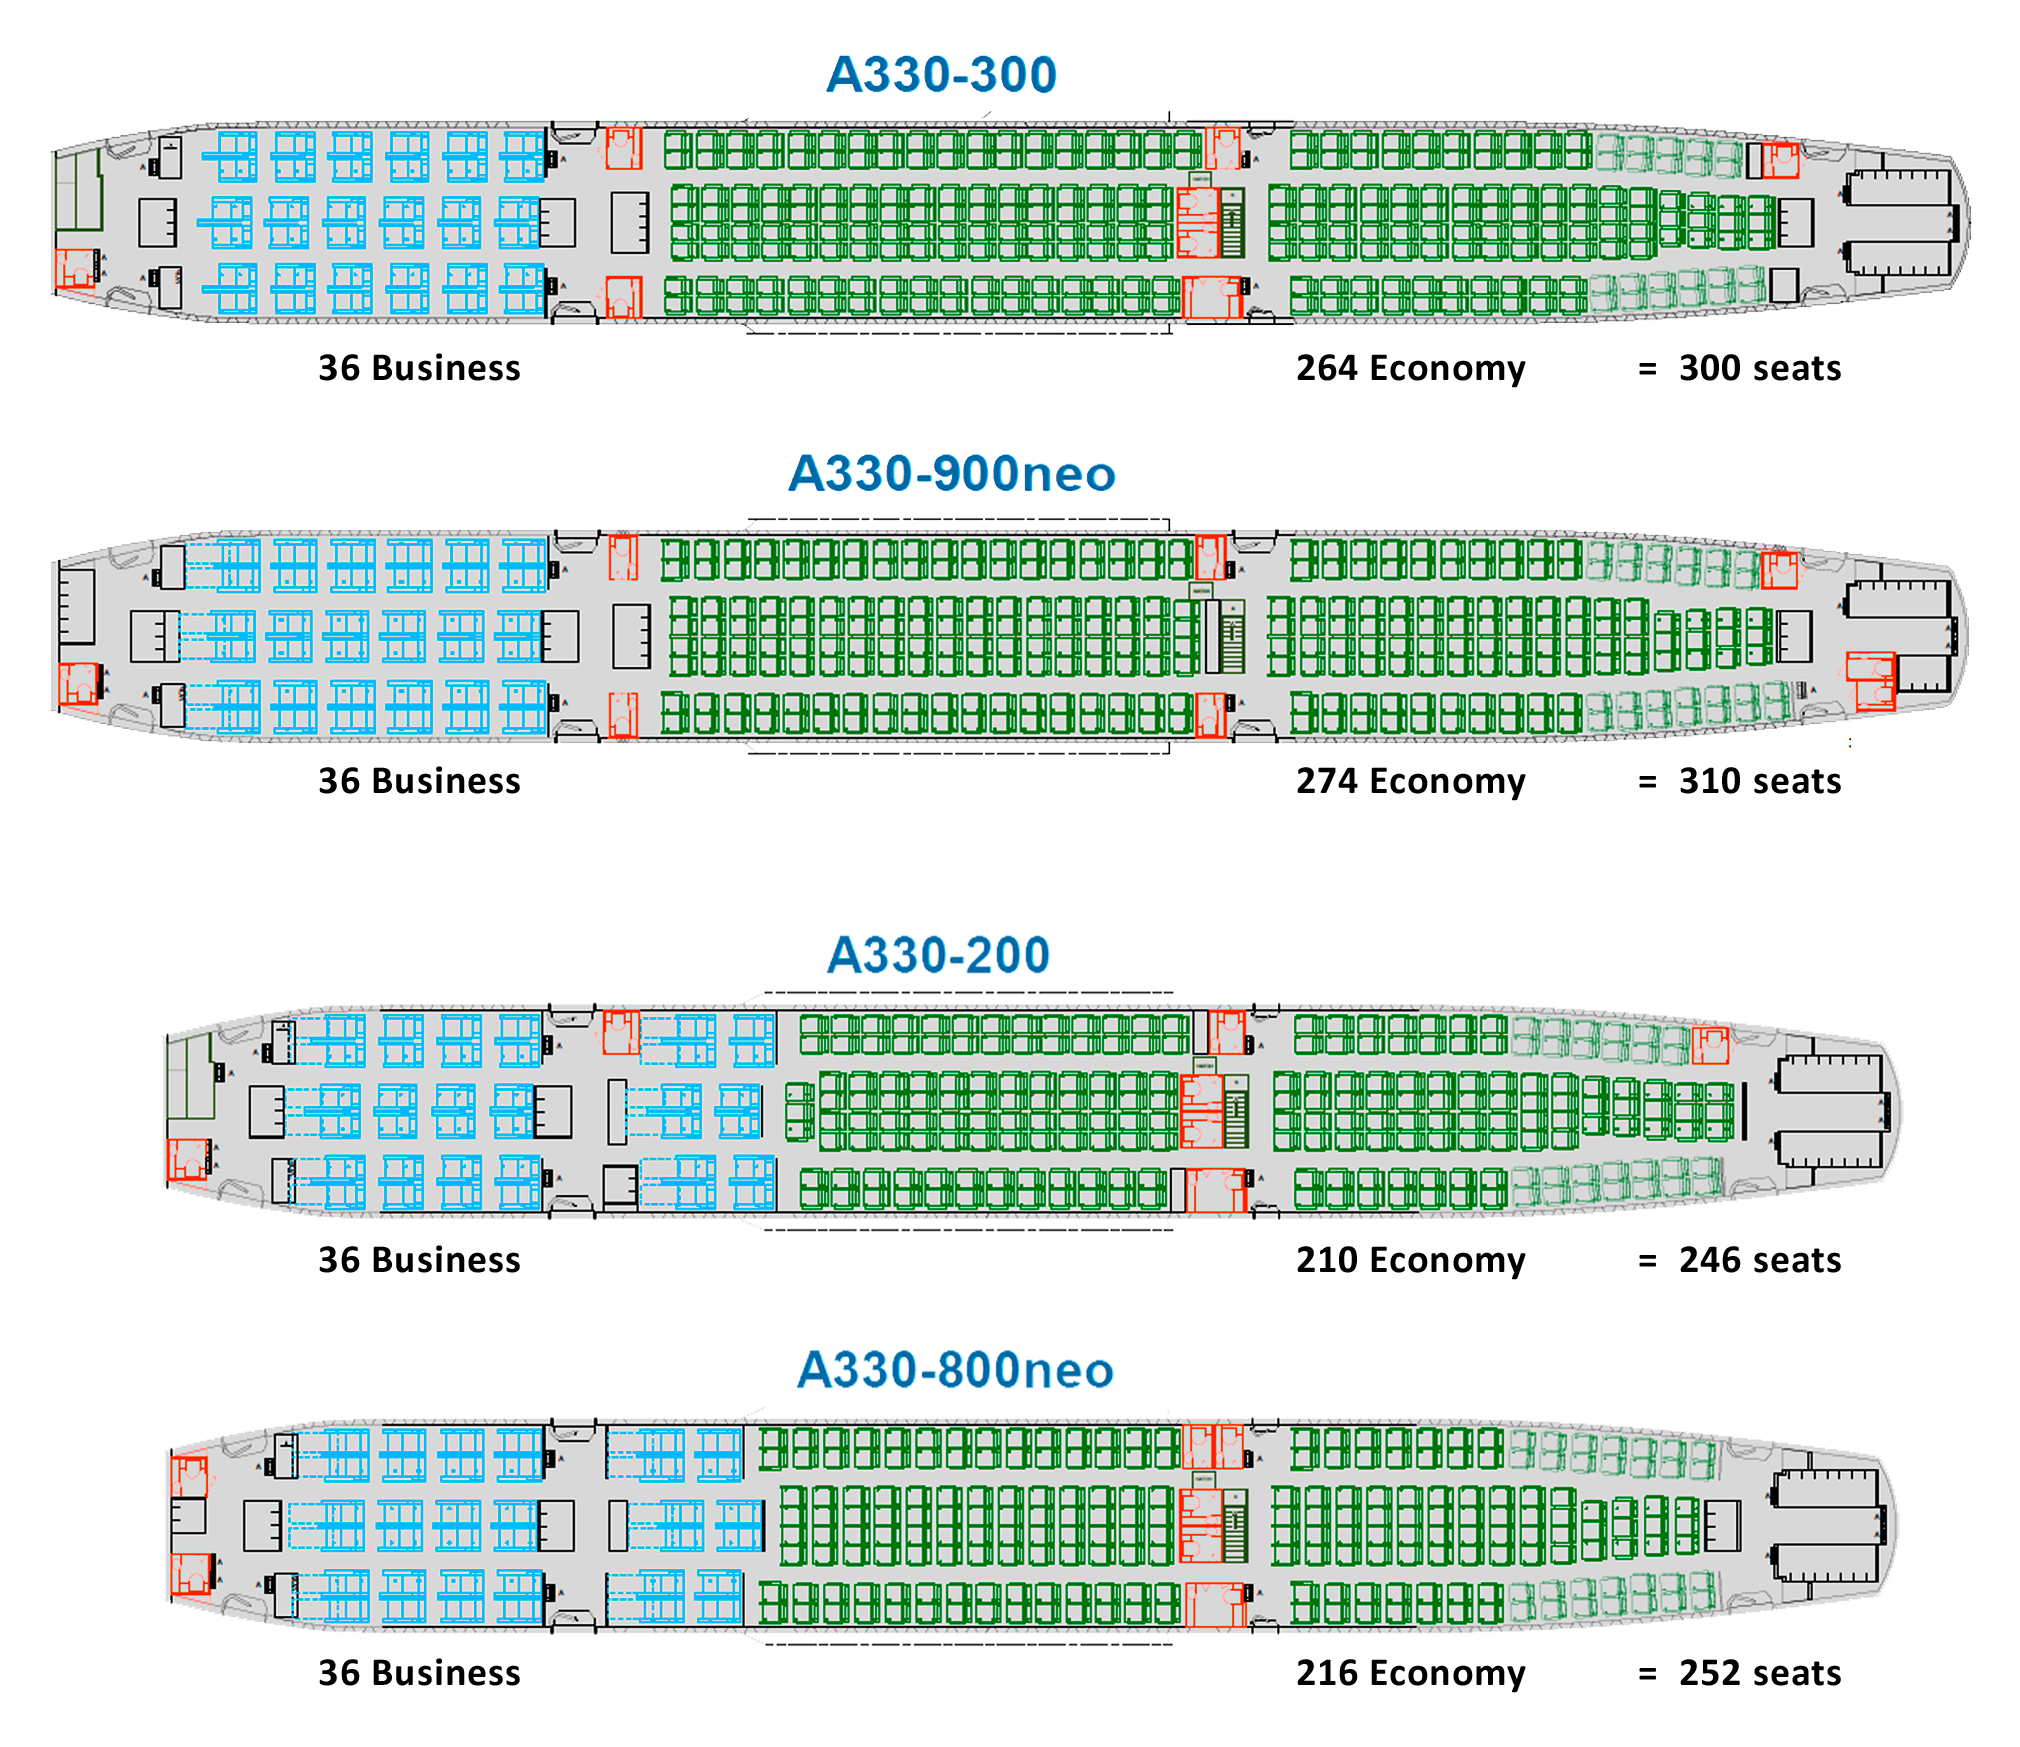 Airbus A330 and A330neo cabin layouts